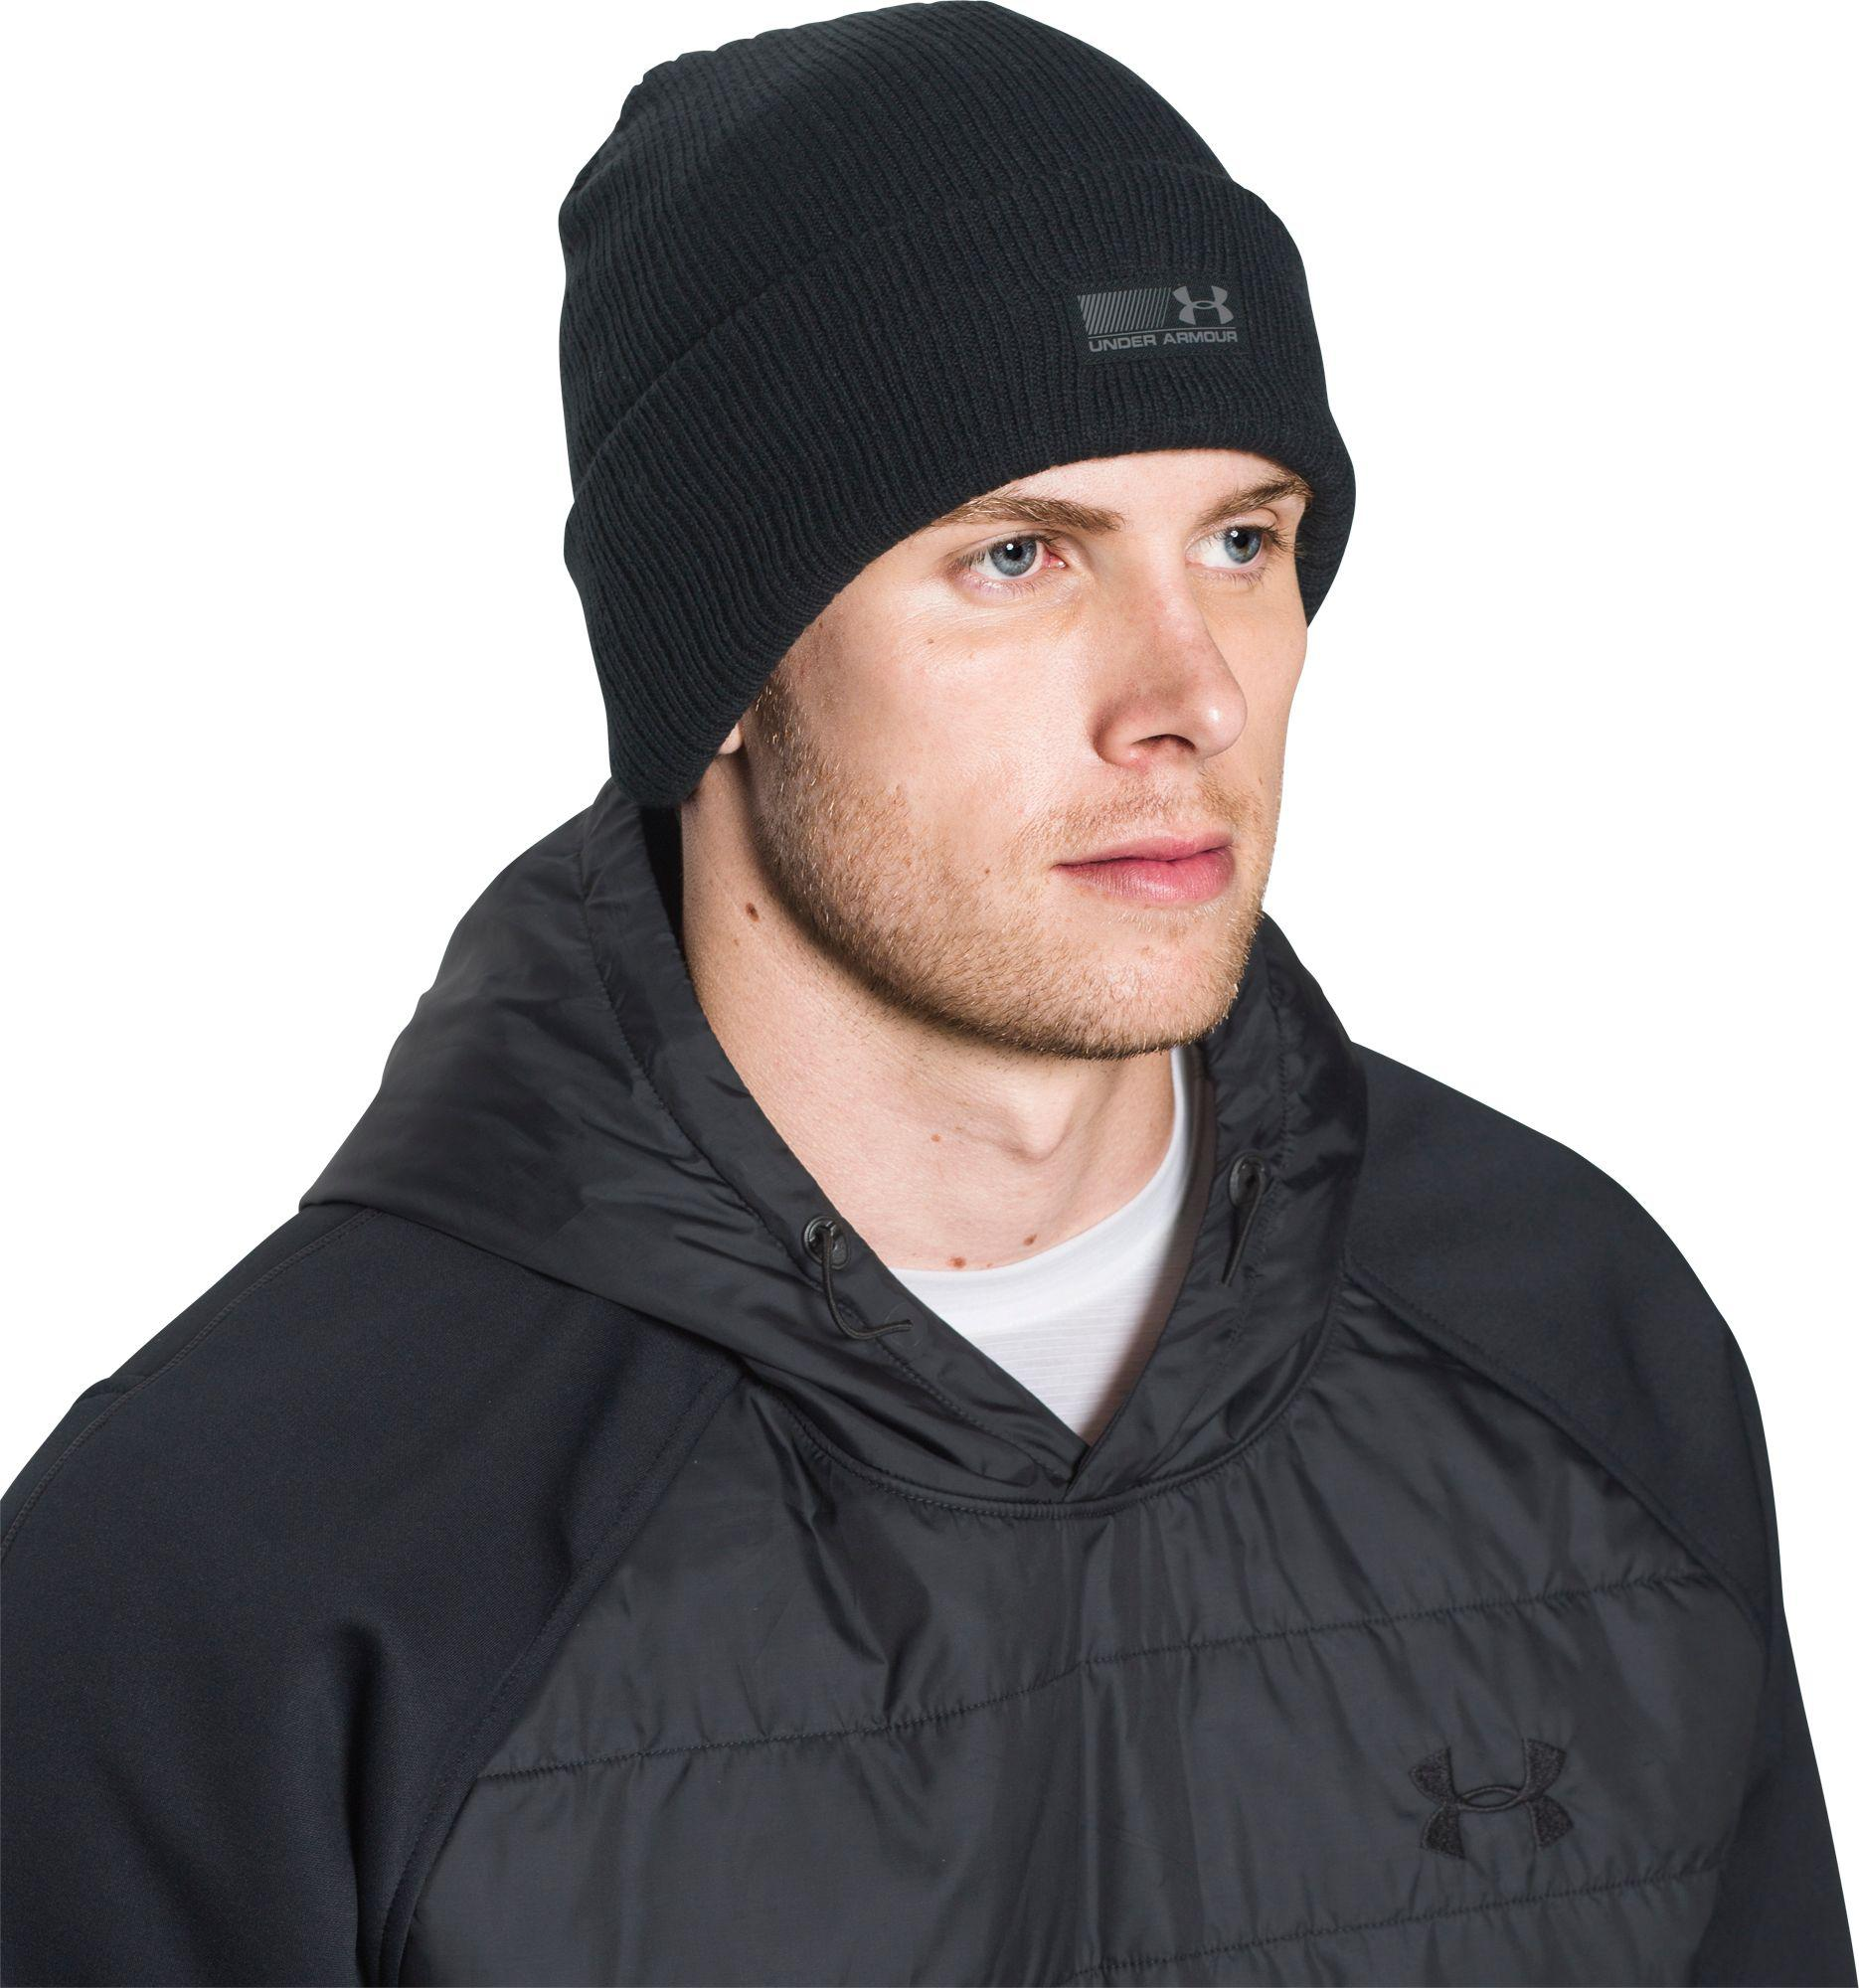 e574306e12c6e8 Under Armour Truck Stop Beanie in Black for Men - Lyst